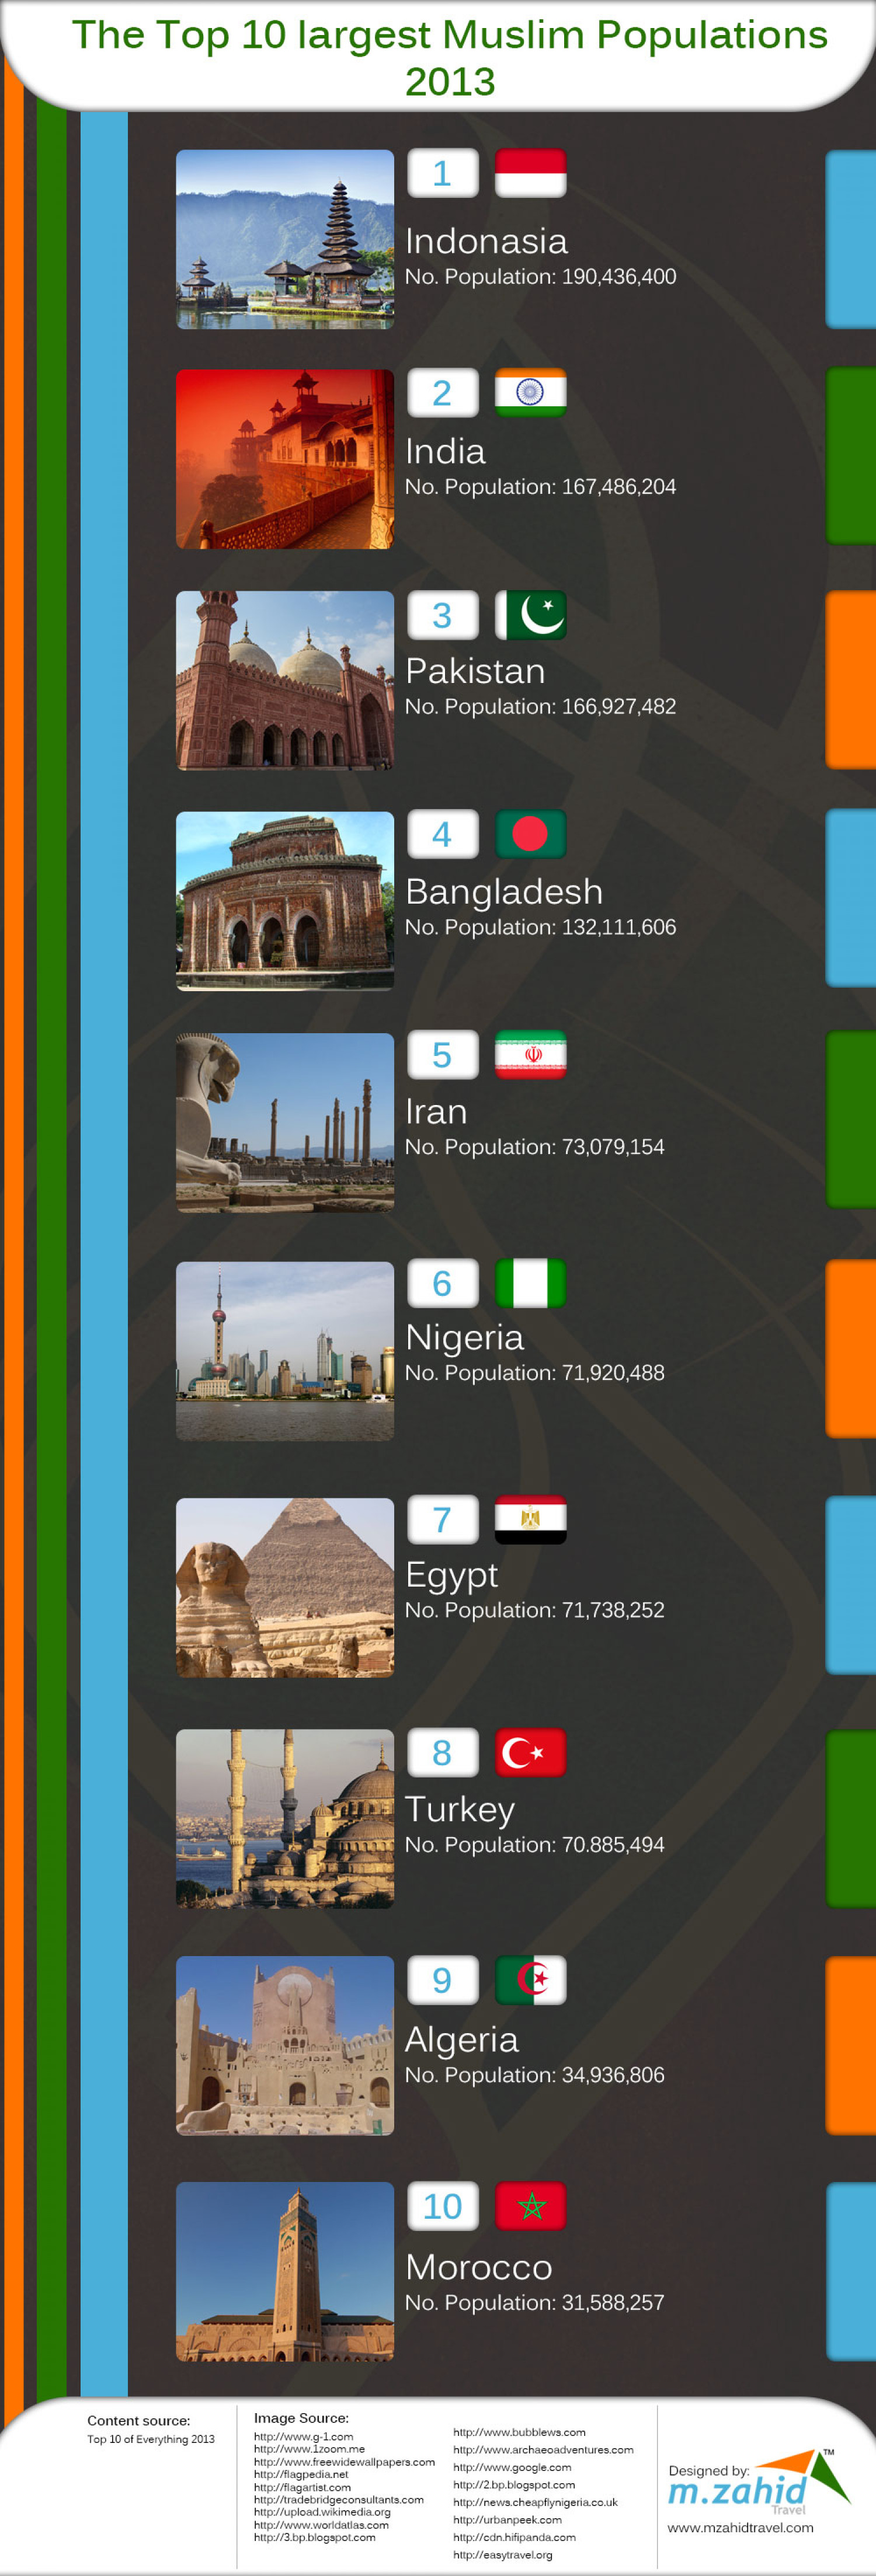 The Top 10 Largest Muslim Populations 2013 Infographic